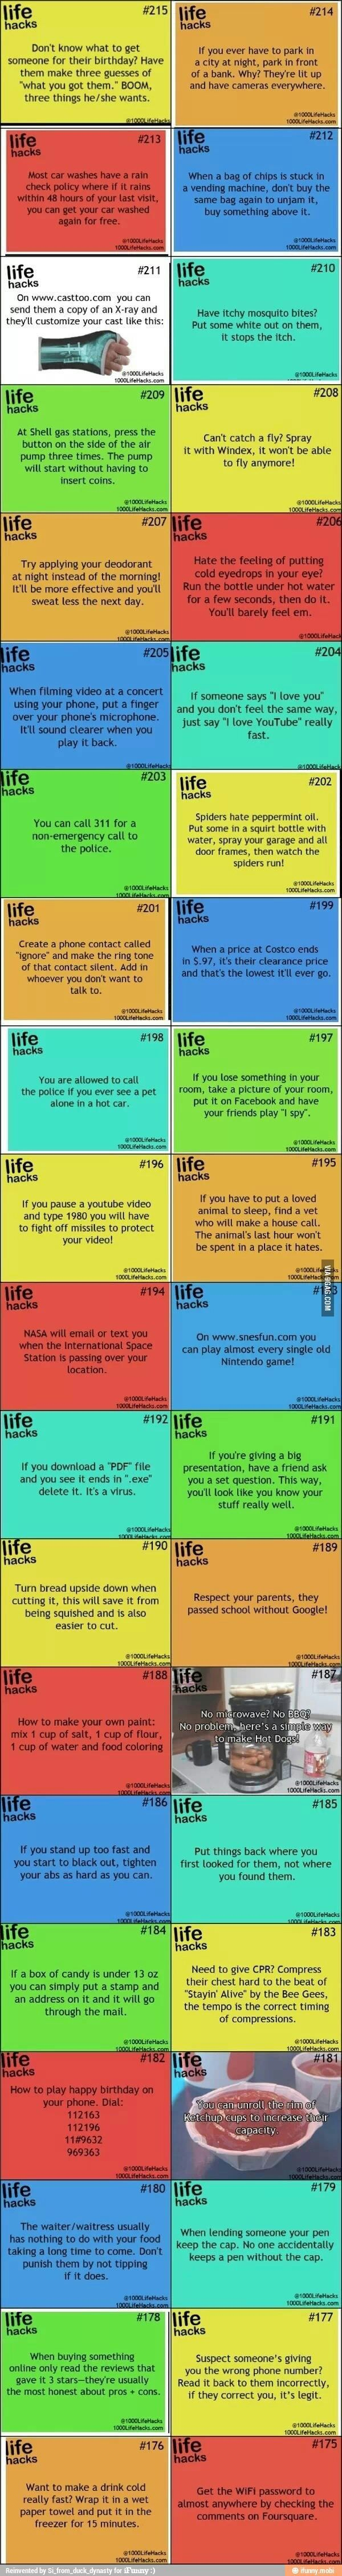 Hate these long graphics, but some good life hacks (where did that expression come from anyway?).